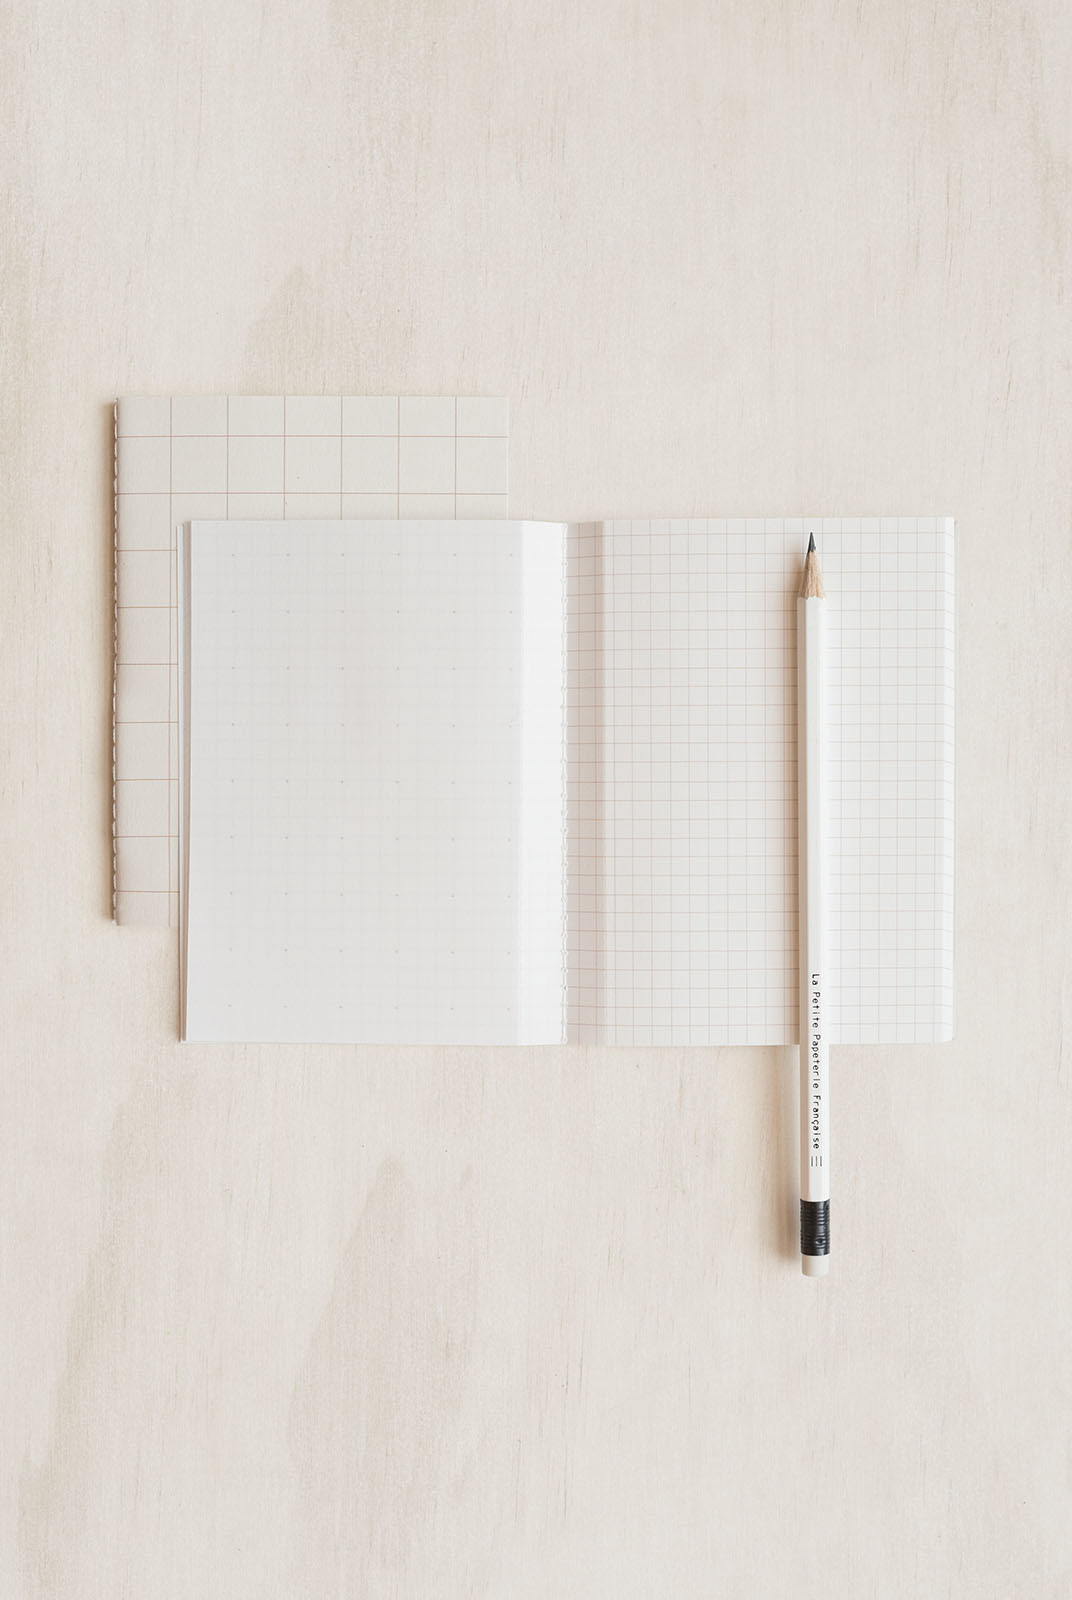 NoteMaker -  La Petite Papeterie Francaise - The Useful Notebook, $12.69 . Beautiful graph paper for brief notes.